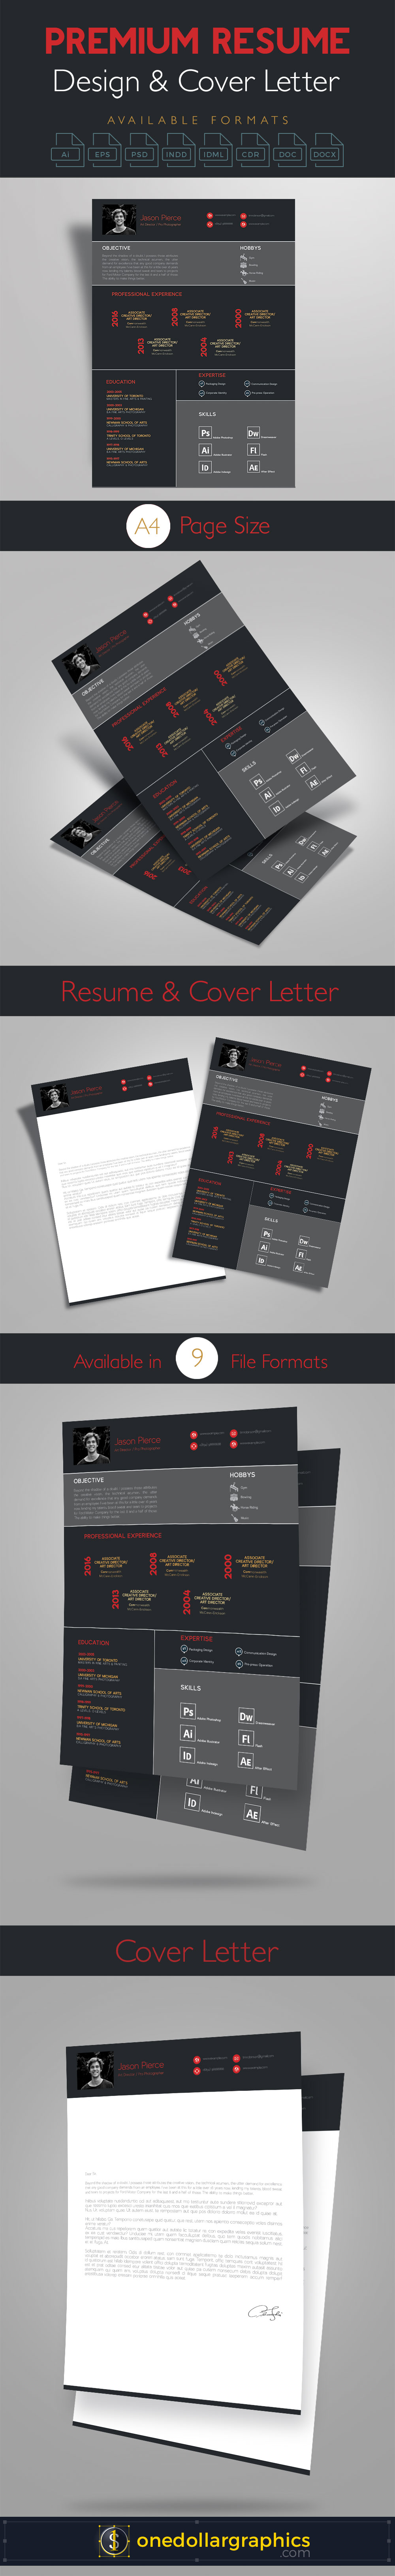 how to make cover letter of resume%0A Creative Infographic Resume Template With Cover Letter   Design   Pinterest    Infographic resume  Infographic and Template